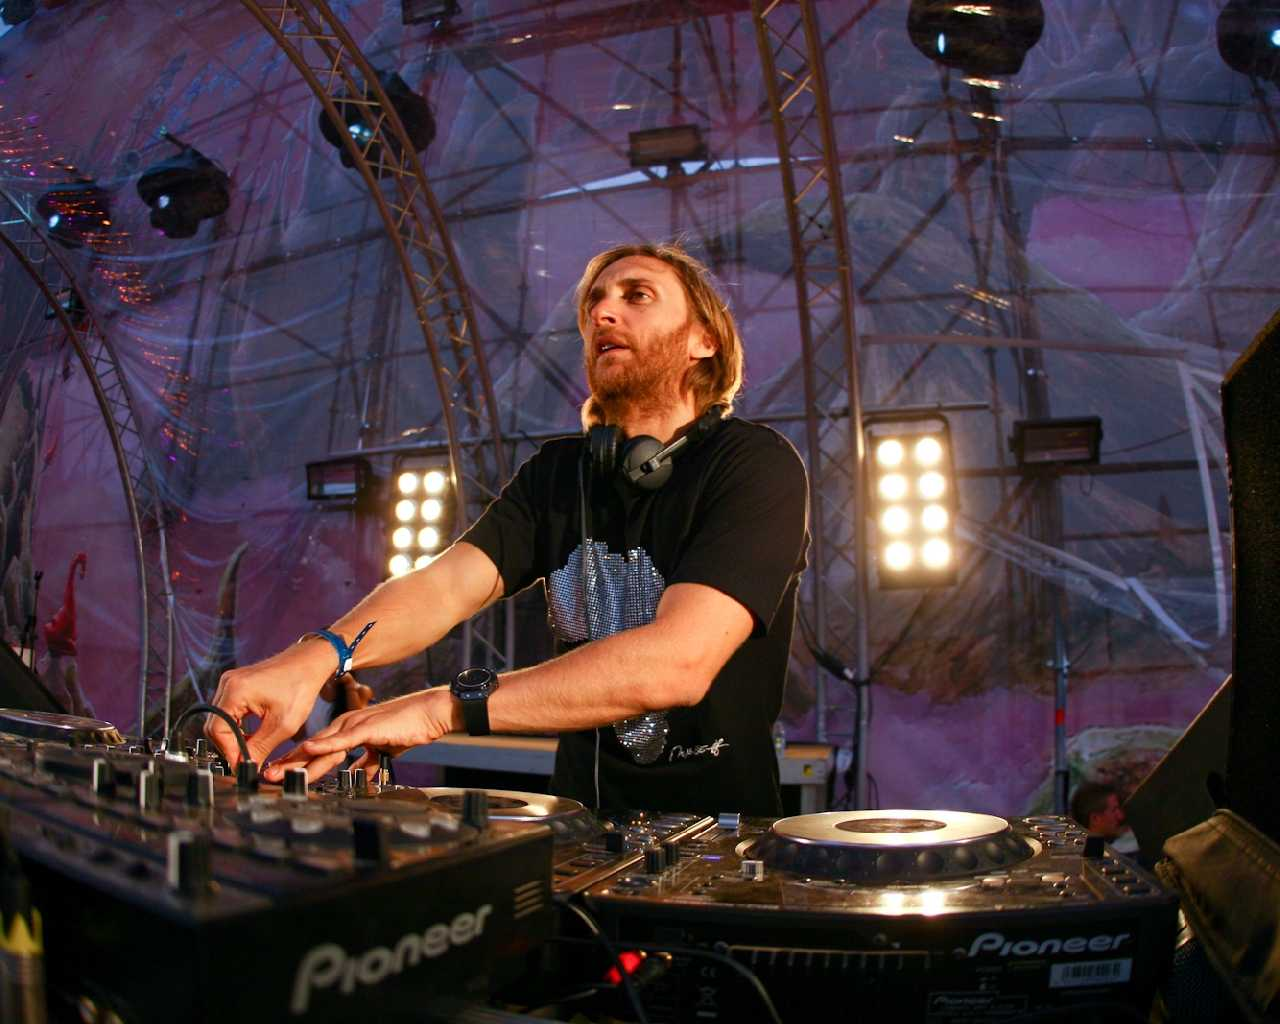 Best Wallpapers For Iphone 6 Hd 30 Best David Guetta Photographs Which Is Rocking Hdpixels